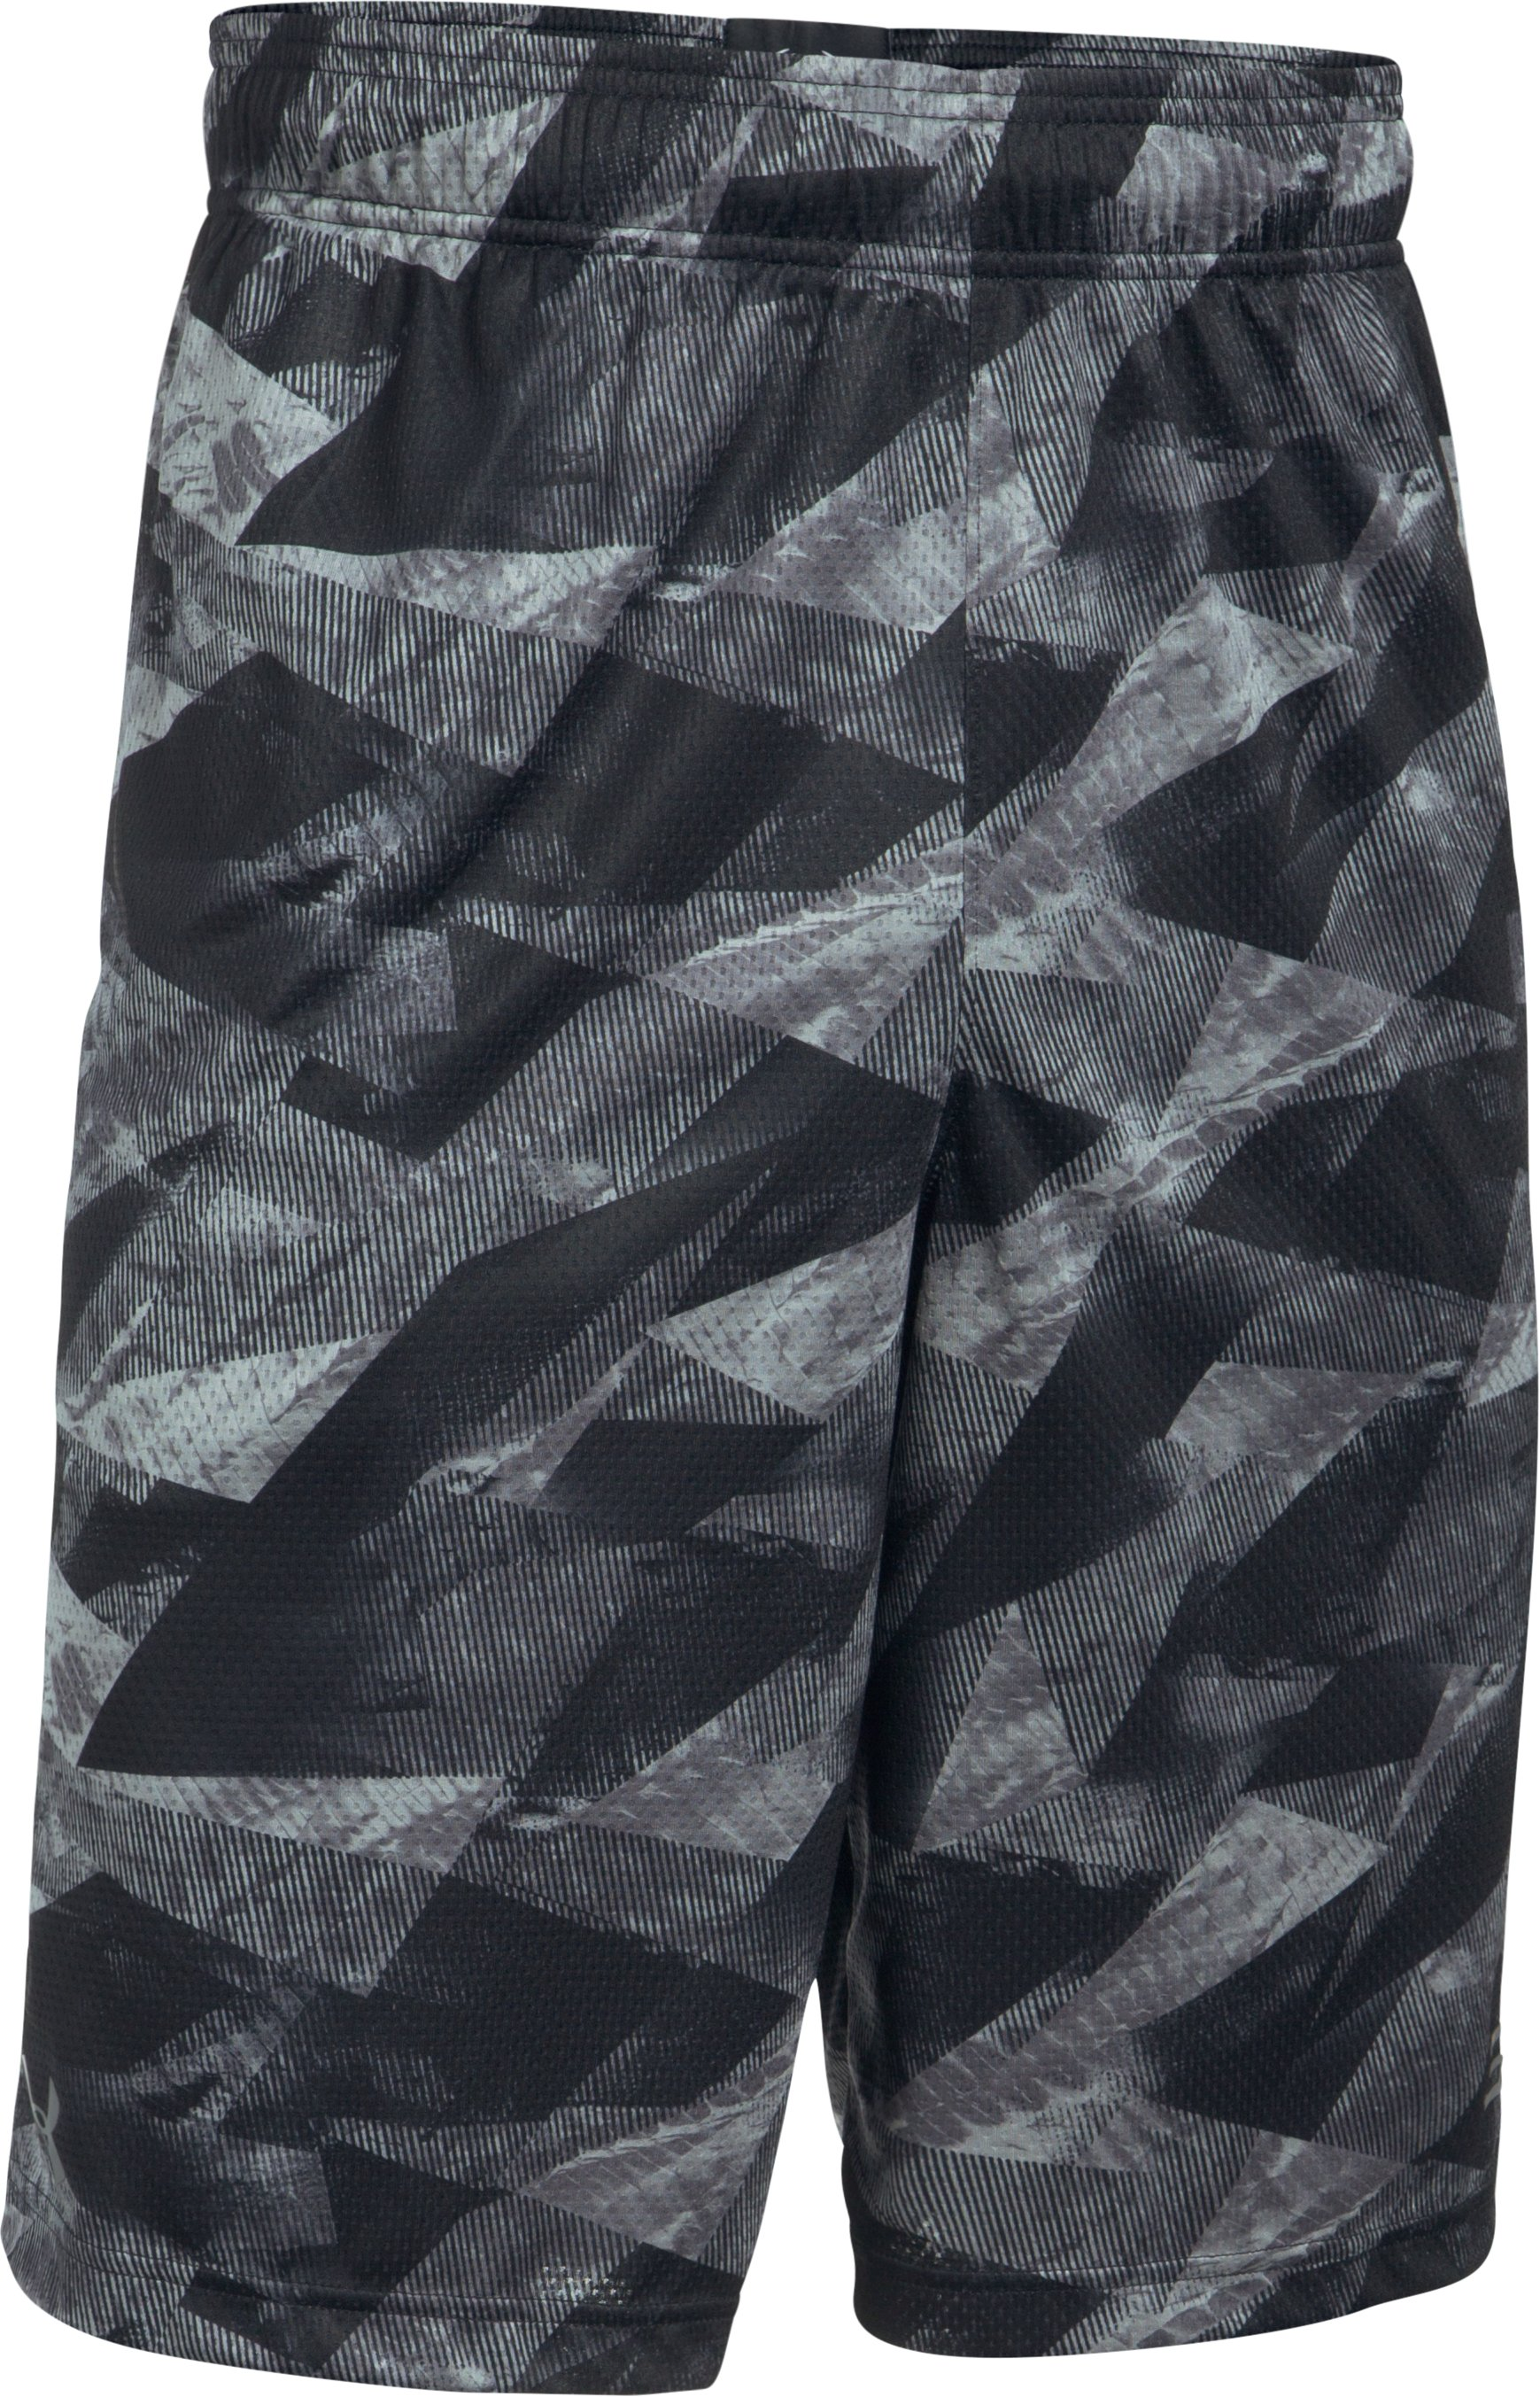 Men's SC30 Aero Wave Printed Shorts, Black